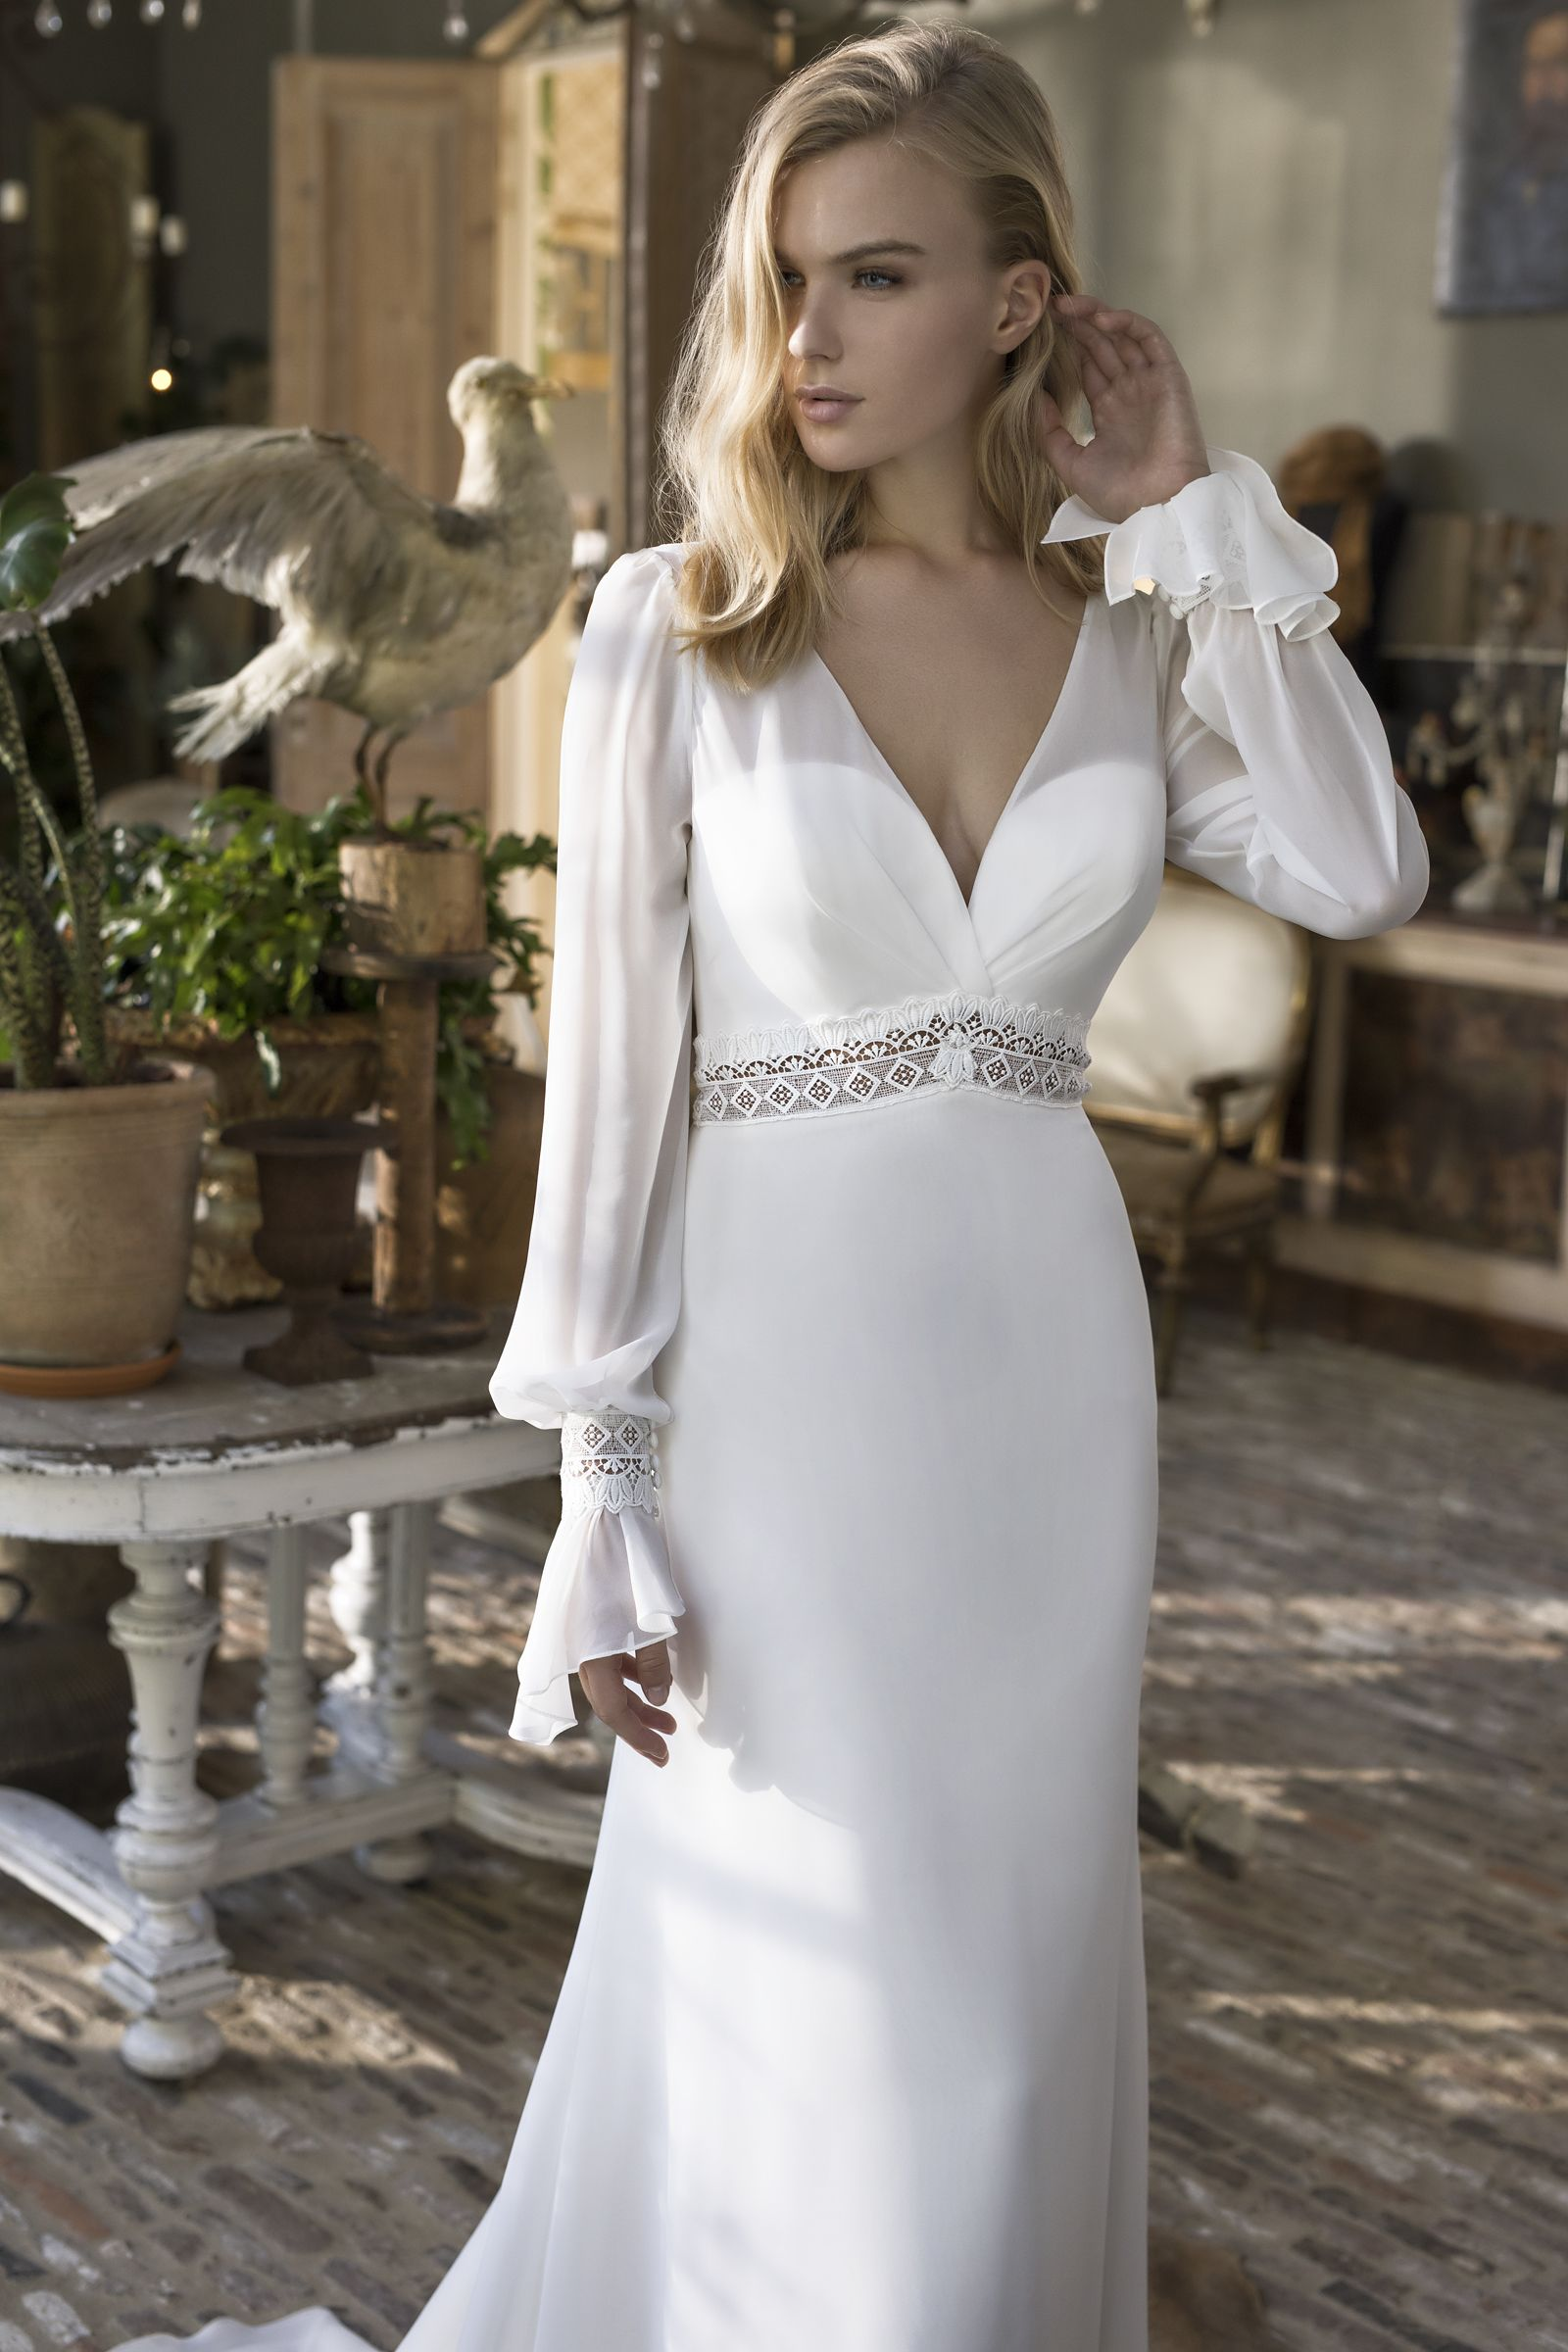 Taft & Tule Wedding Dress Trouwjurk Bruidsj… | Say yes to the dress ...